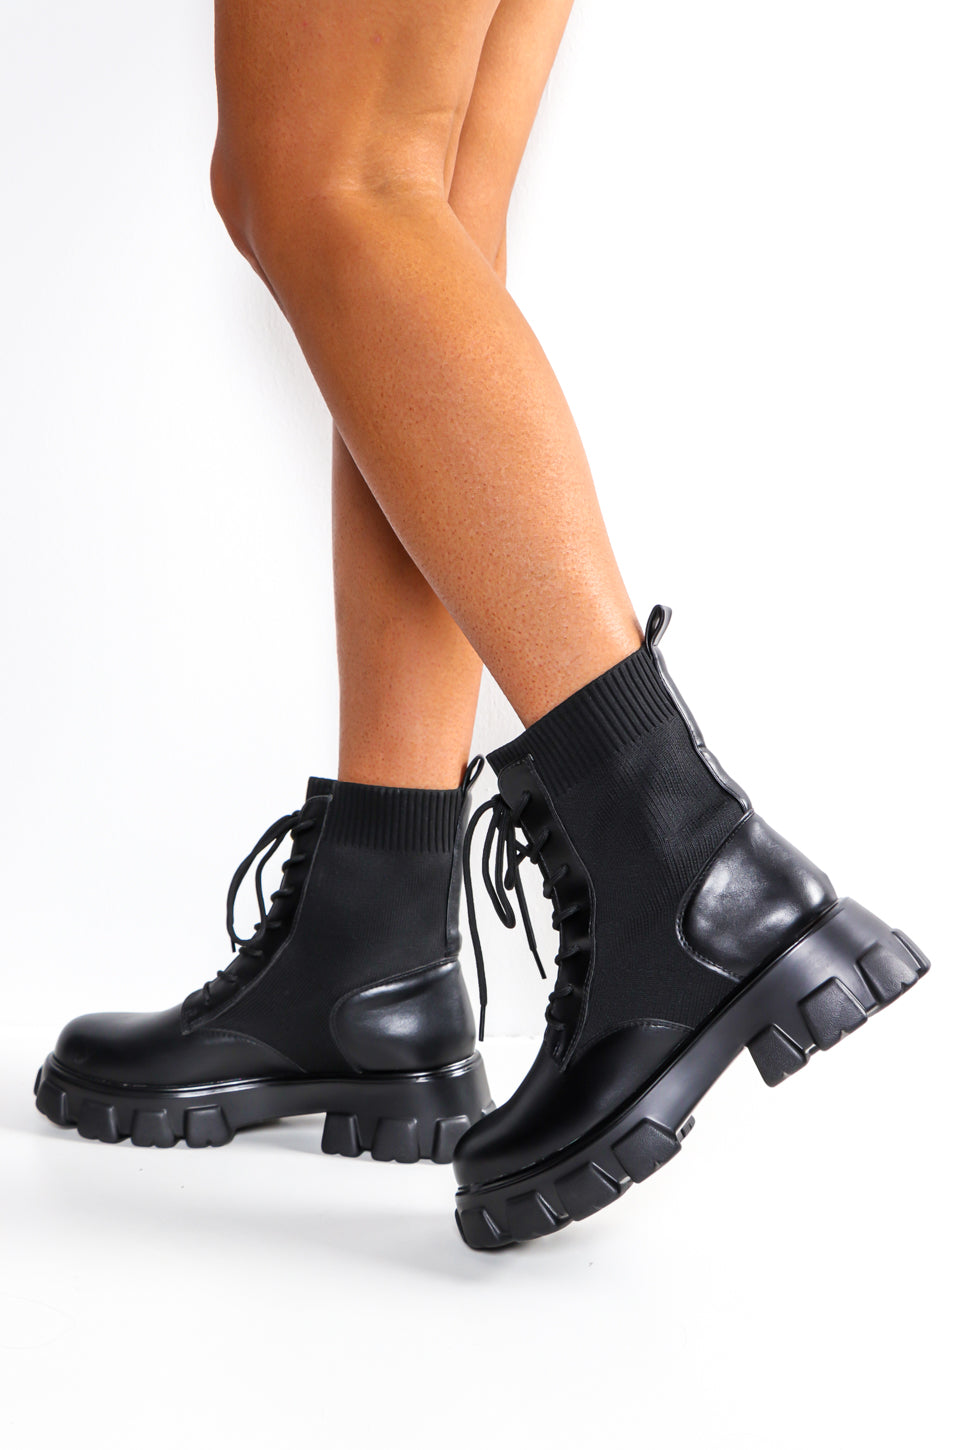 Sock Off - Black Lace Up Boot